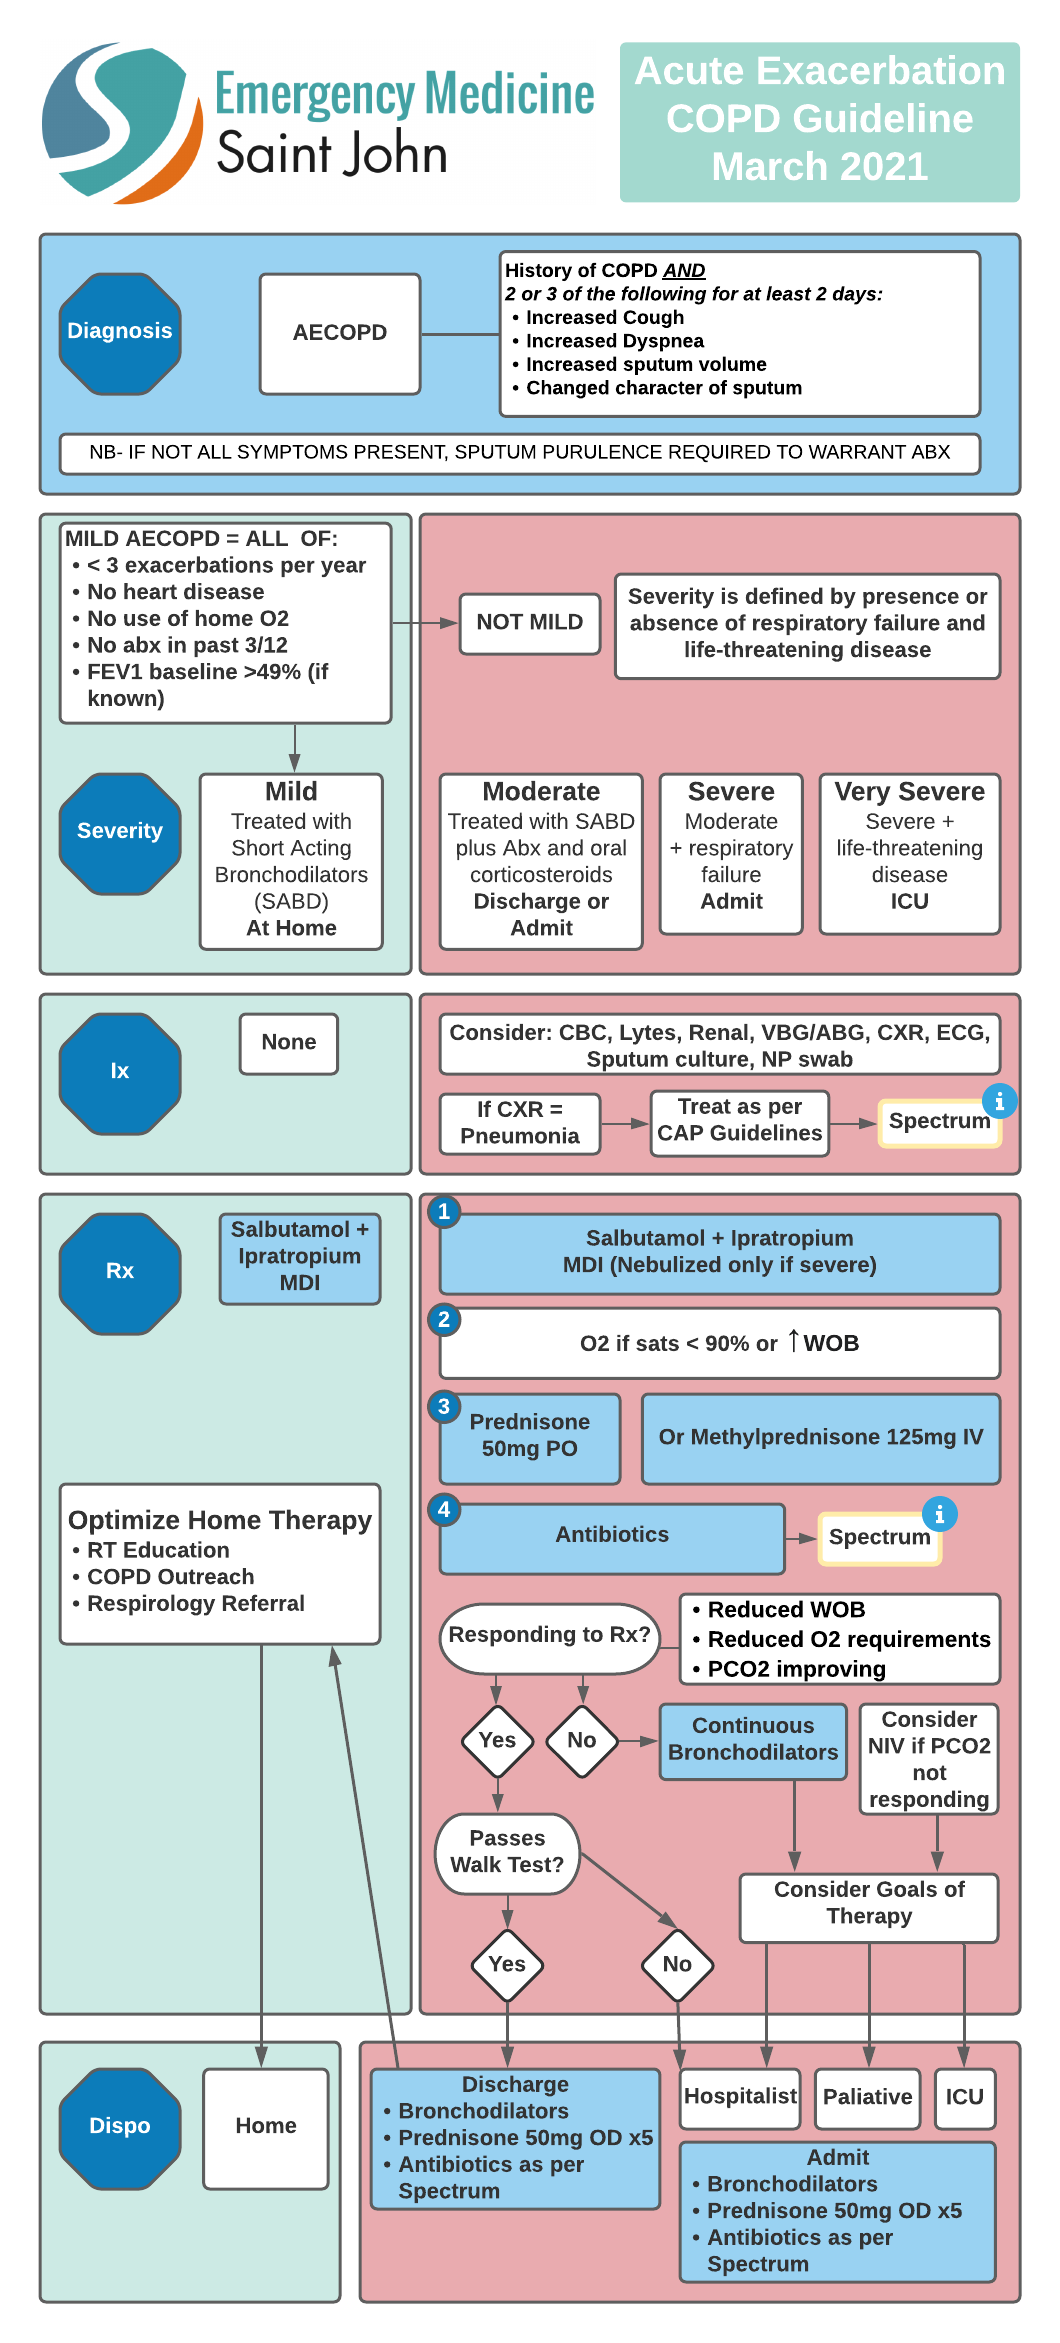 COPD Guideline